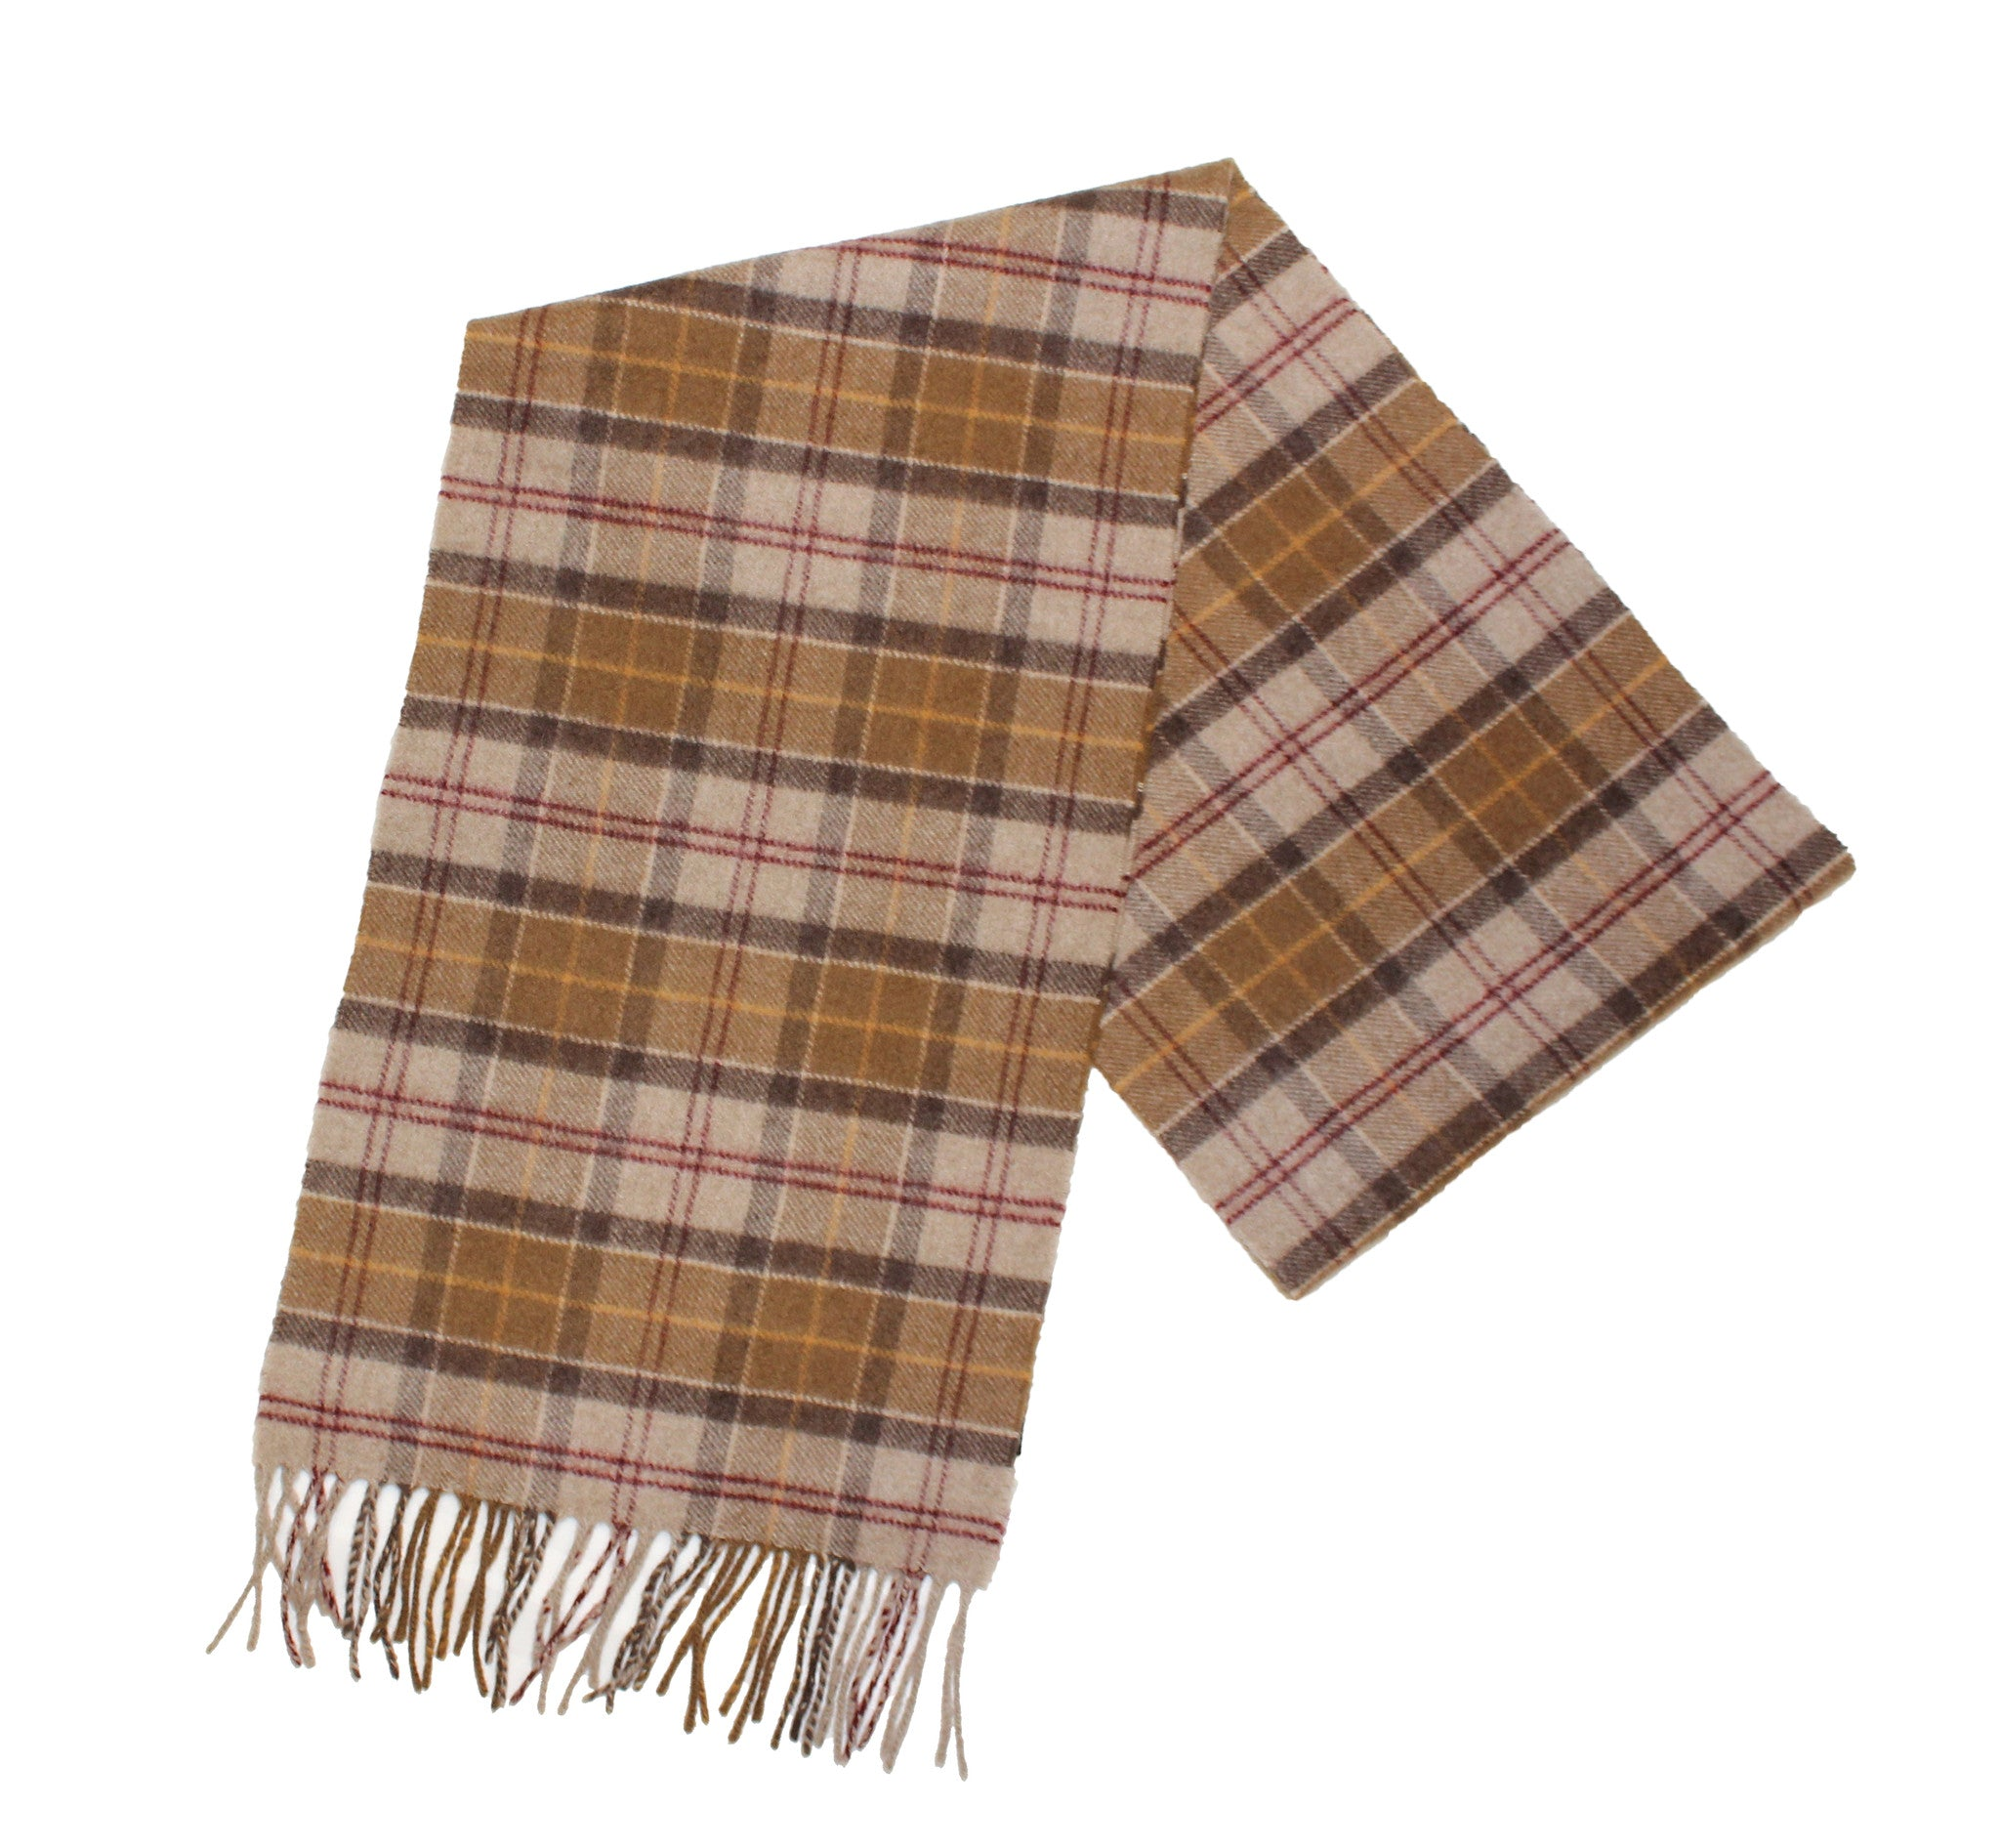 Barbour 100% Cashmere Muted Tartan Scarf - North Shore Saddlery